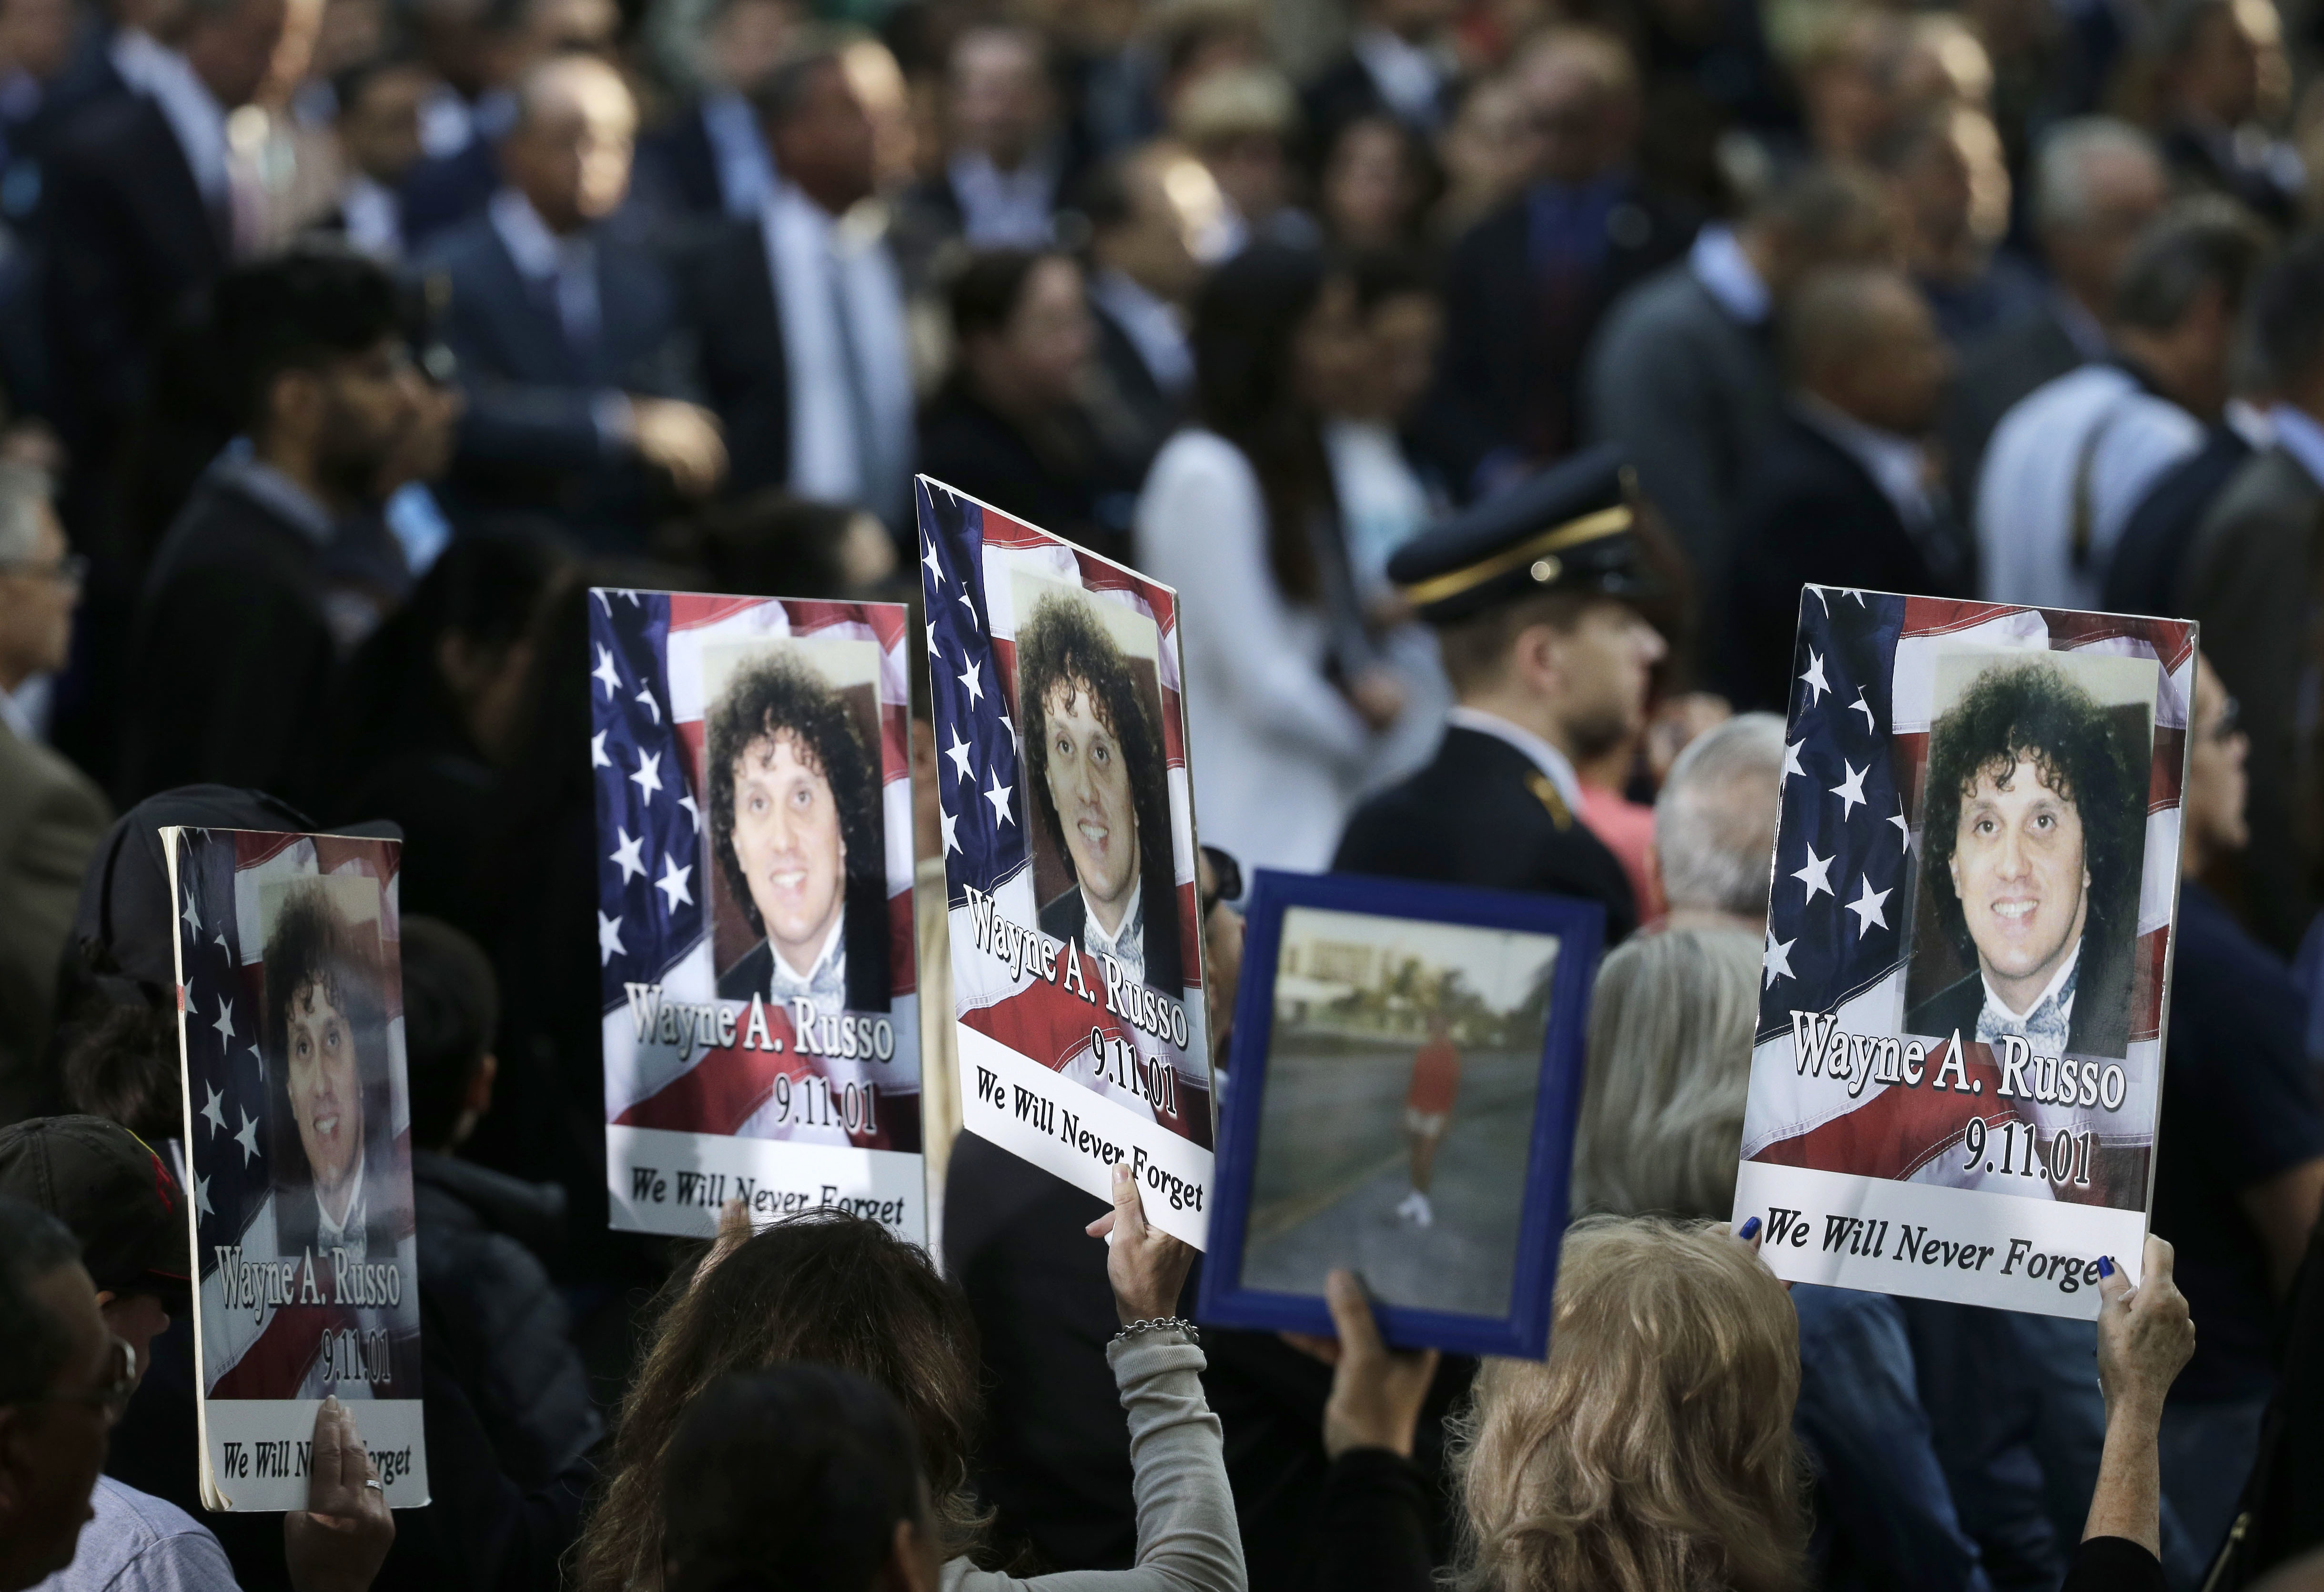 "<div class=""meta image-caption""><div class=""origin-logo origin-image none""><span>none</span></div><span class=""caption-text"">People hold up signs with the names and pictures of victims of the 9/11 terrorist attacks during a ceremony at ground zero in New York, Monday, Sept. 11, 2017. (AP Photo/Seth Wenig)</span></div>"